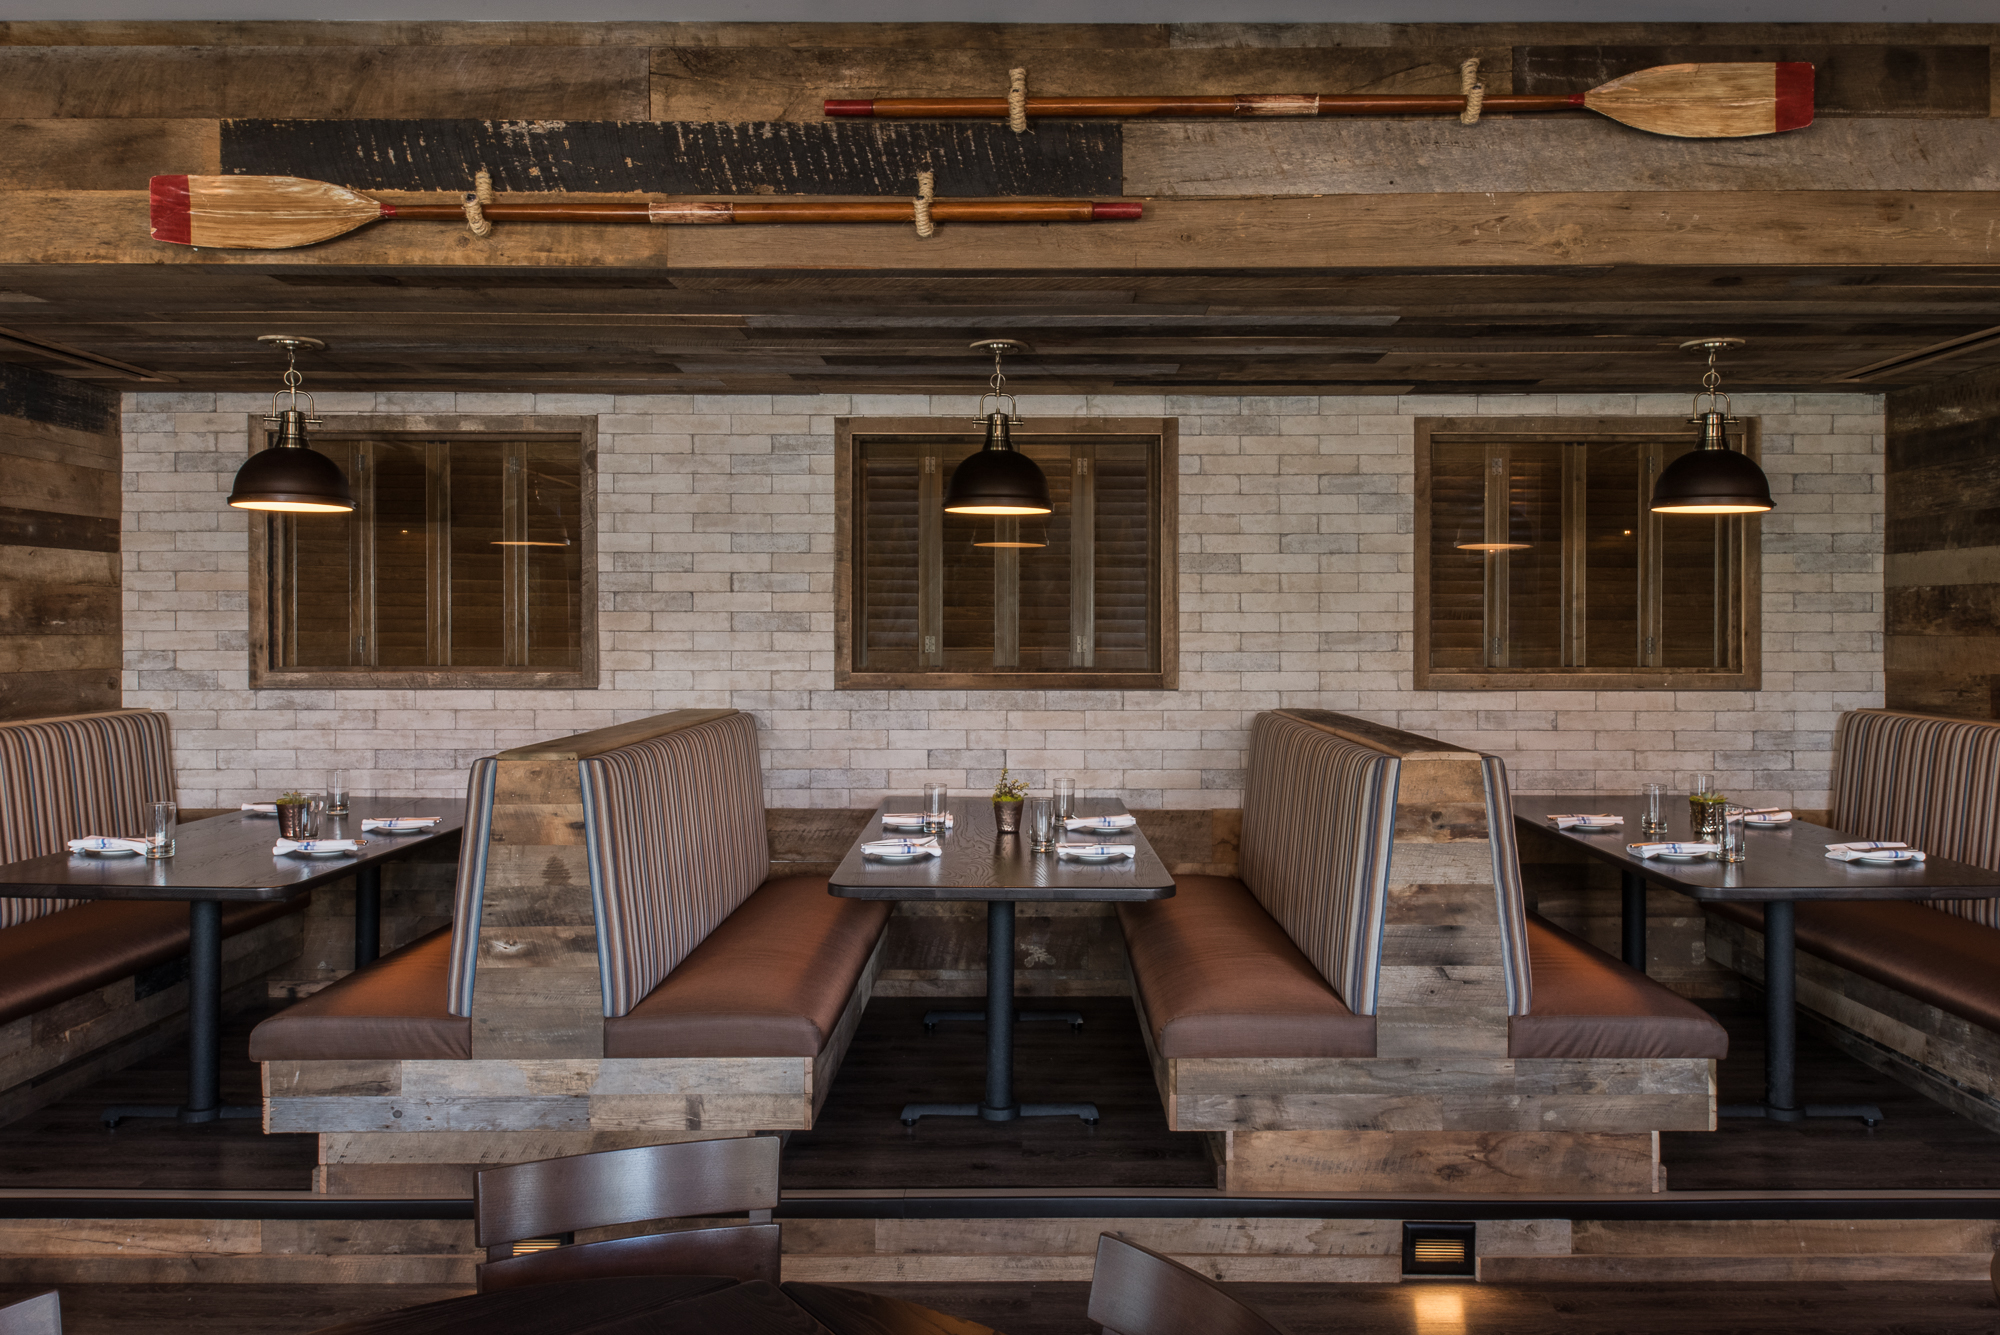 Micamy Design Studio_Interior Design_River and Post_Restaurant_Rooftop_Bar_Industrial_Rustic_Coastal_Riverside_Reclaimed Wood_Blog Style_Styling Accessories_Dining_Cocktails (12).jpg